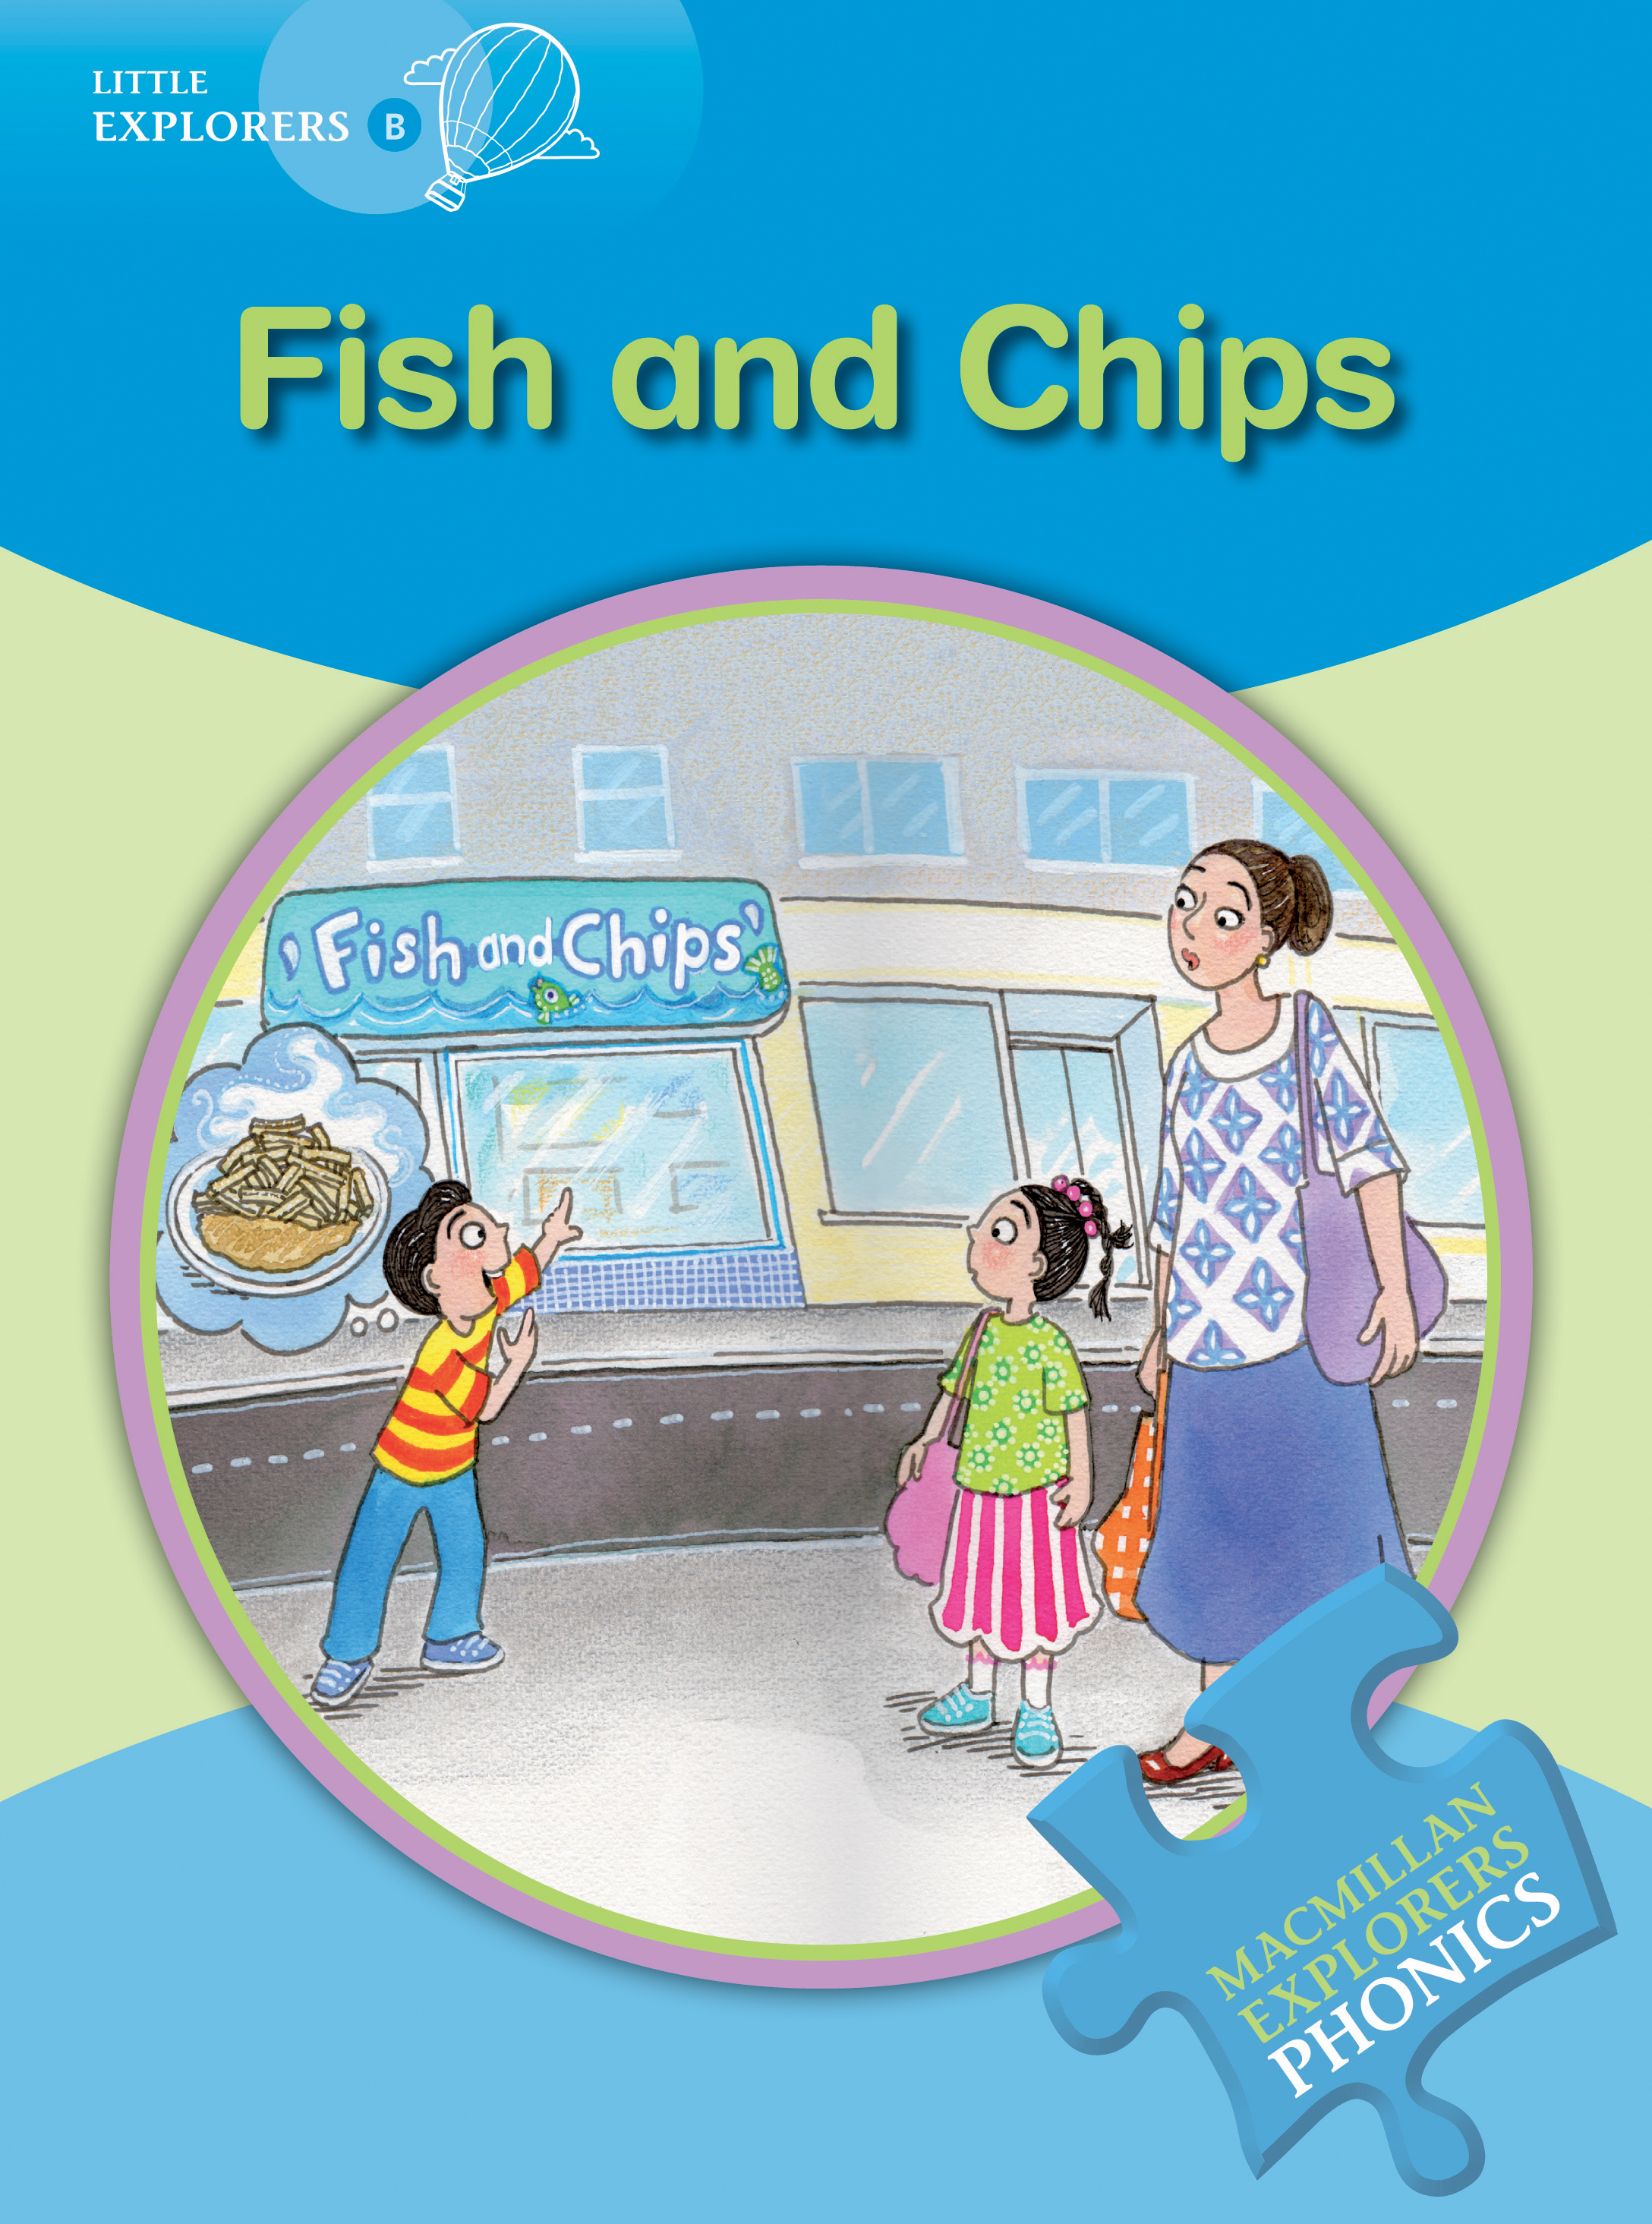 Little Explorers B: Fish and Chips